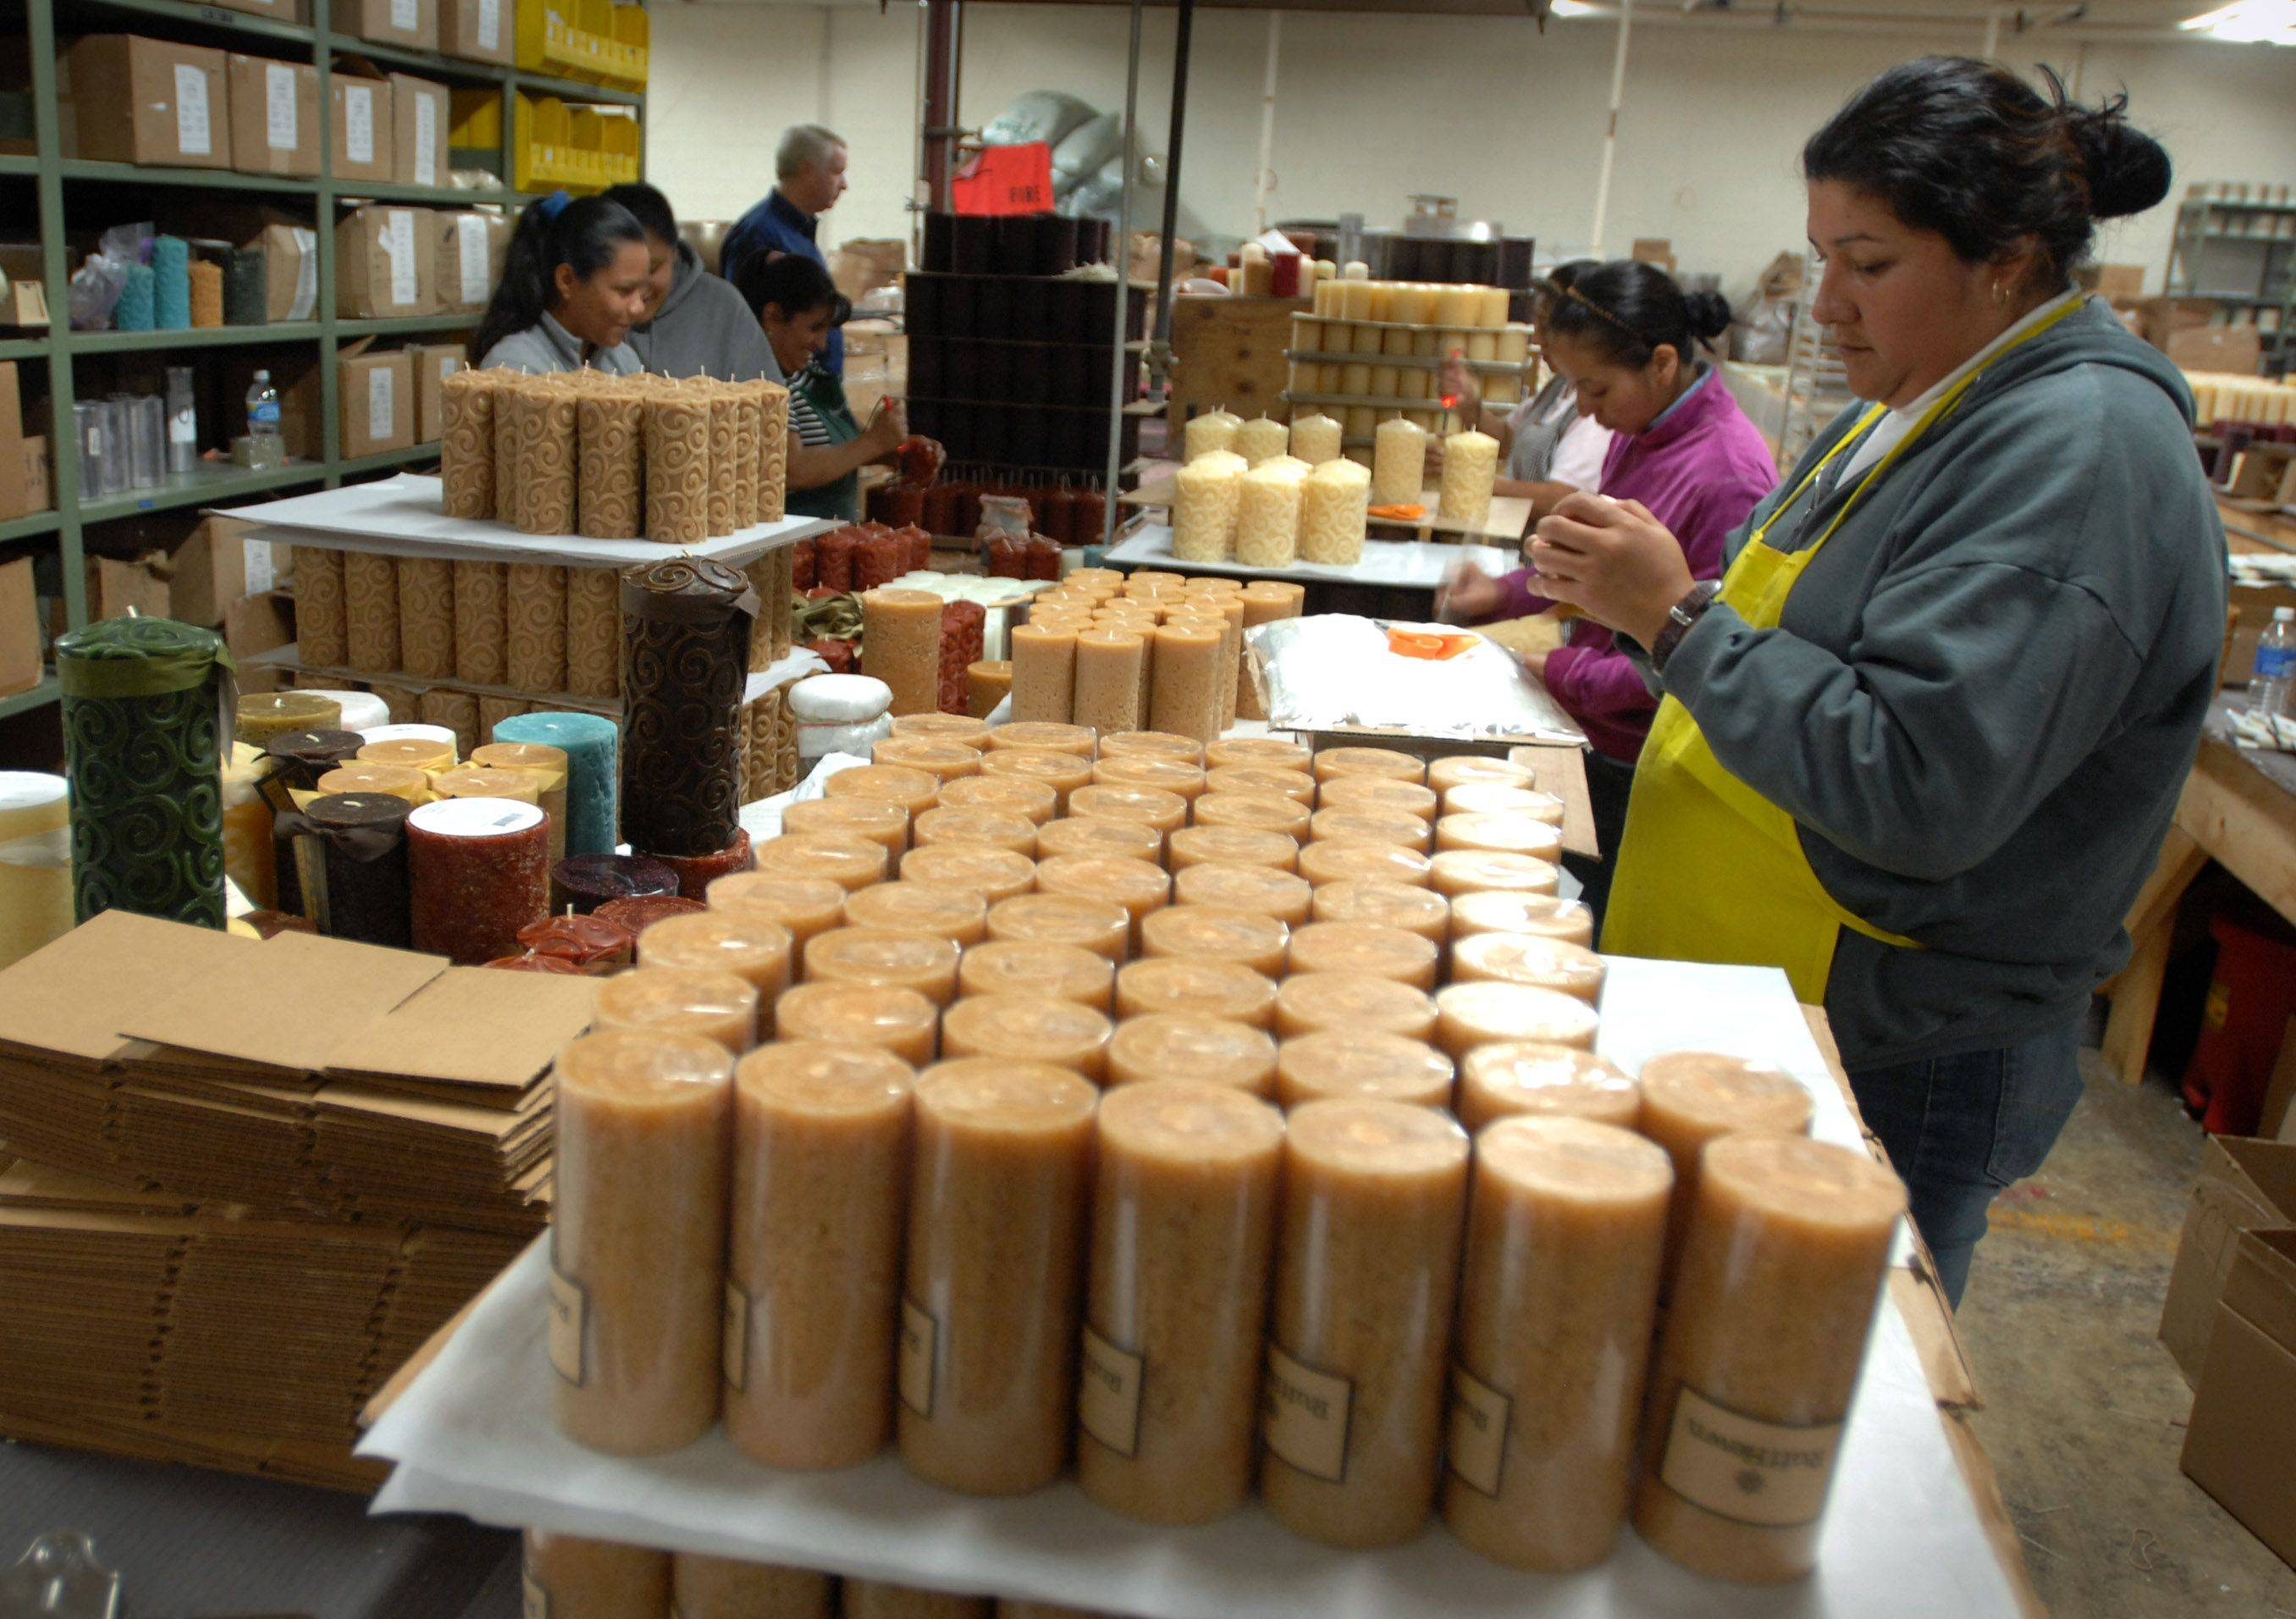 Candles were made by hand at the Heaventree Candle Company in Lake Zurich before it closed in November.